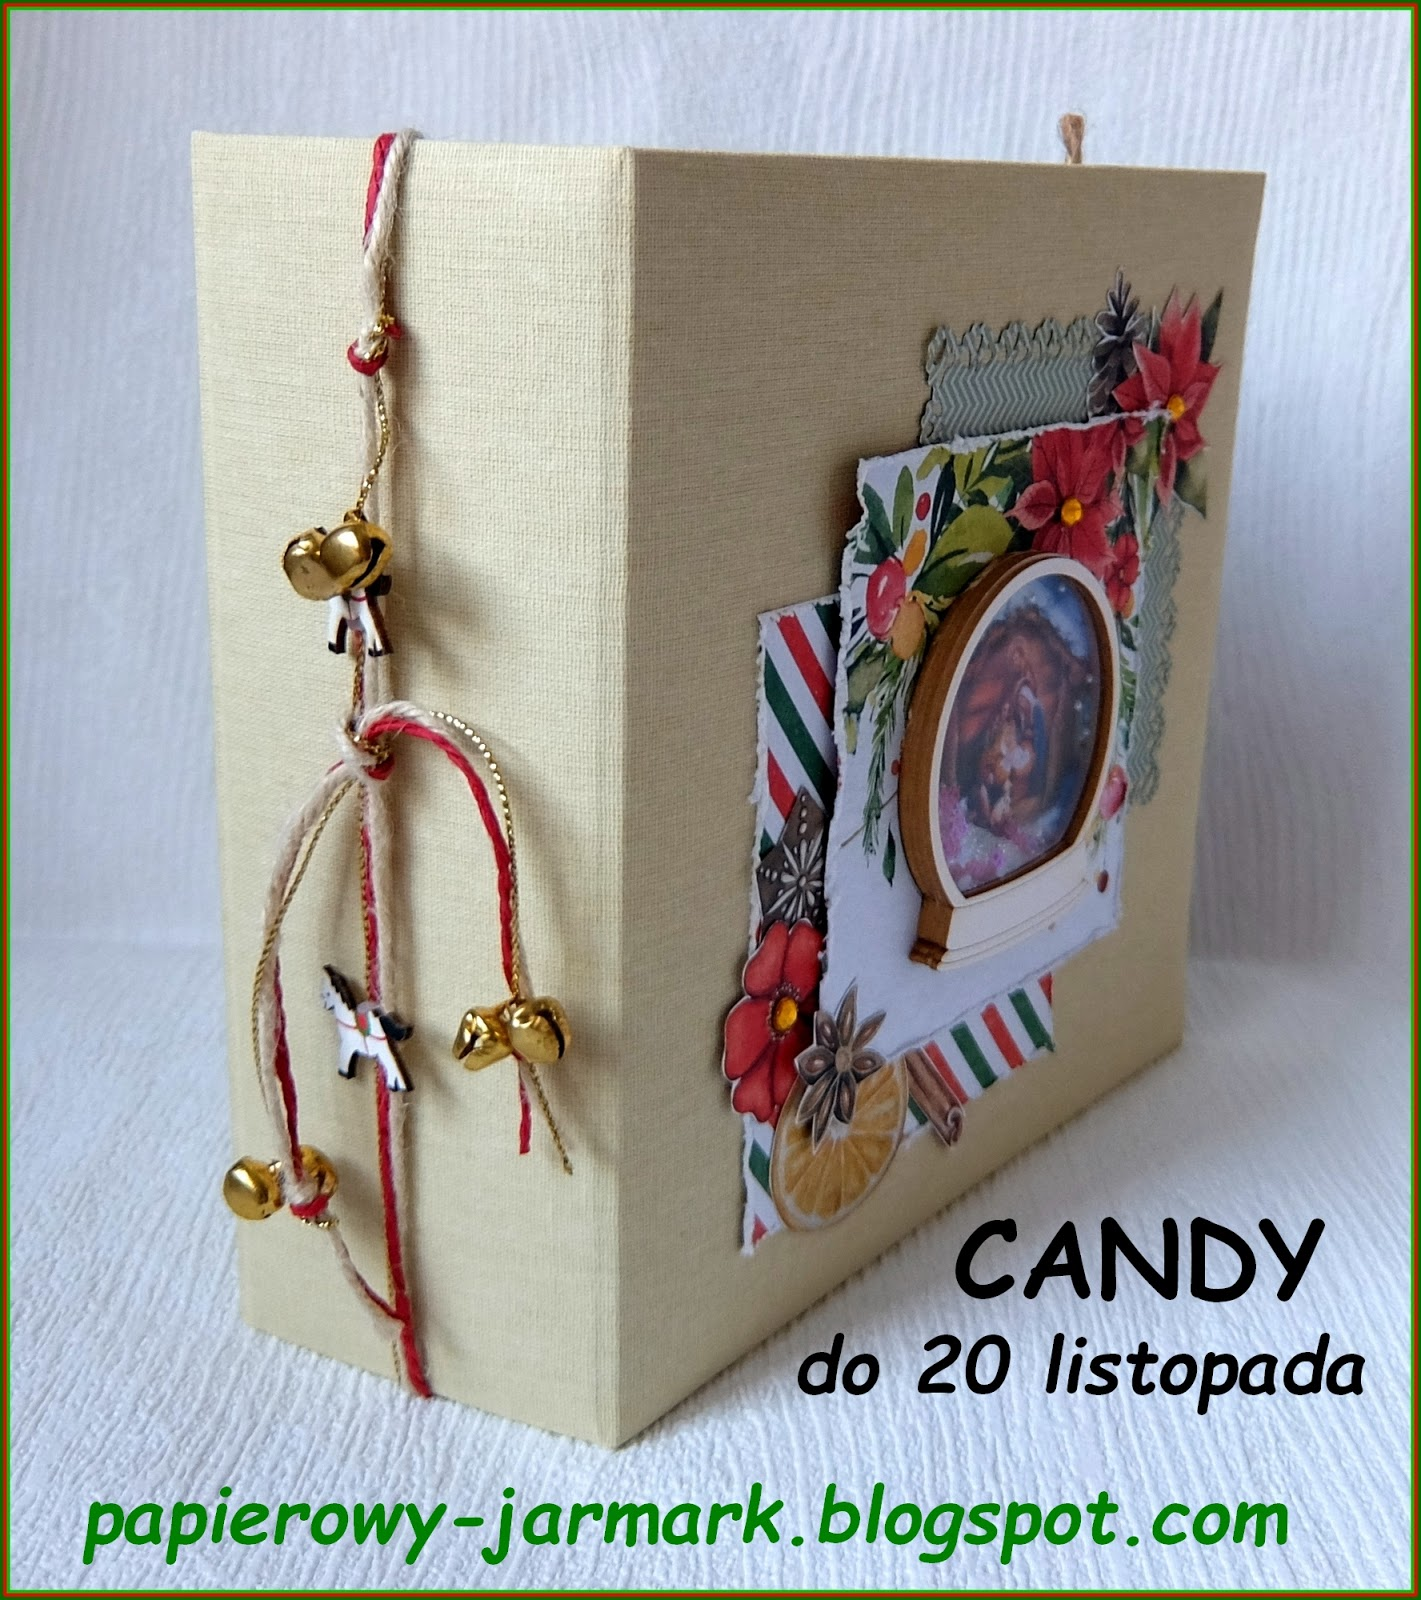 Candy do 20.11